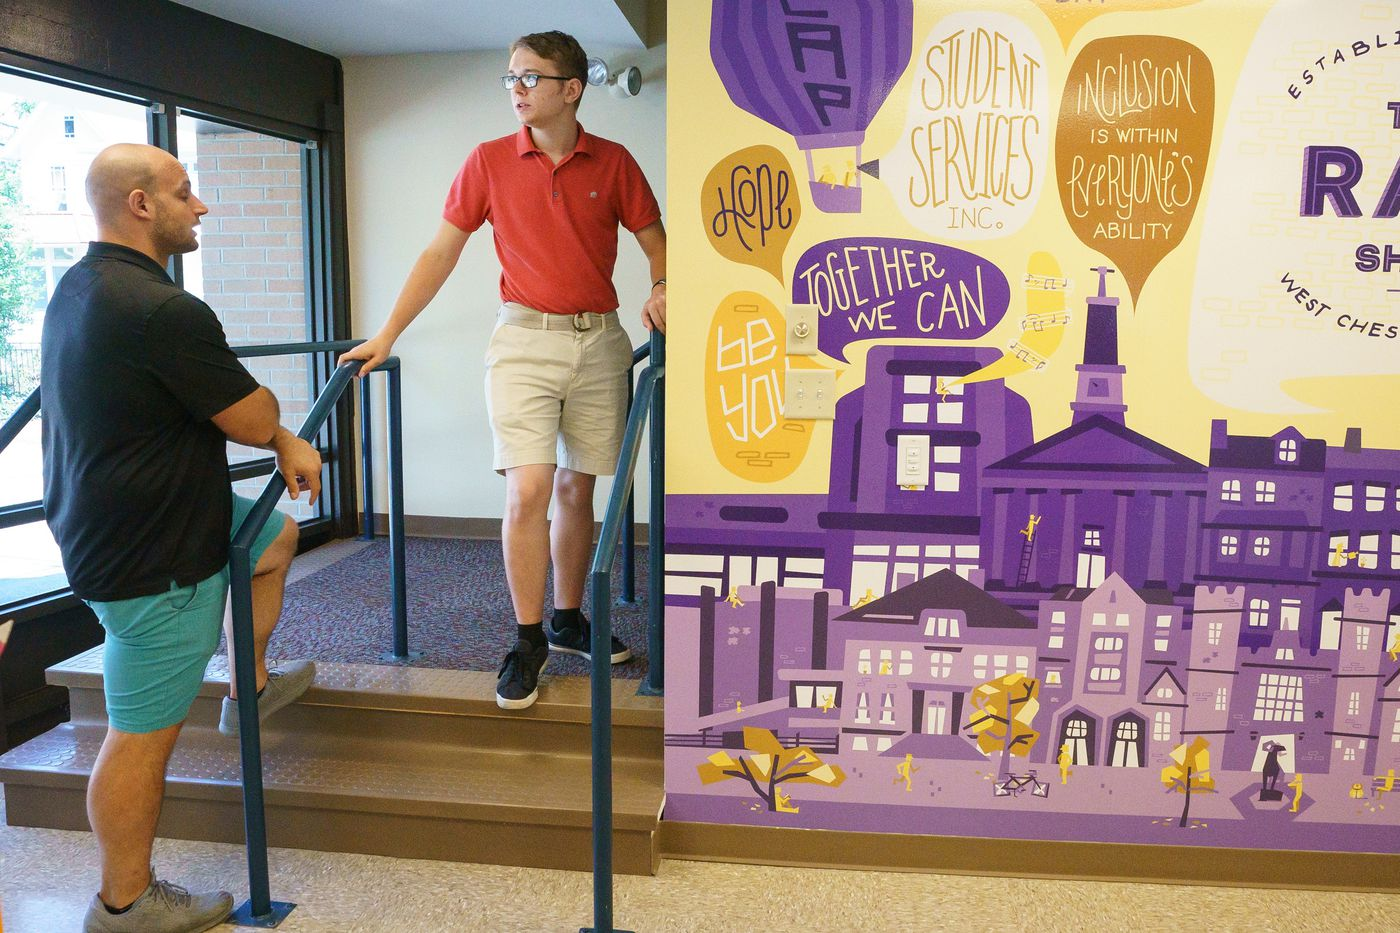 Store manager Bill Marinelli, left, and Tyler Haney, a senior and student worker with autism, at the new convenience store. The mural to the right was painted by students in assistant professor Scotty Reifsnyder's Art 400 Design for Social Good class.